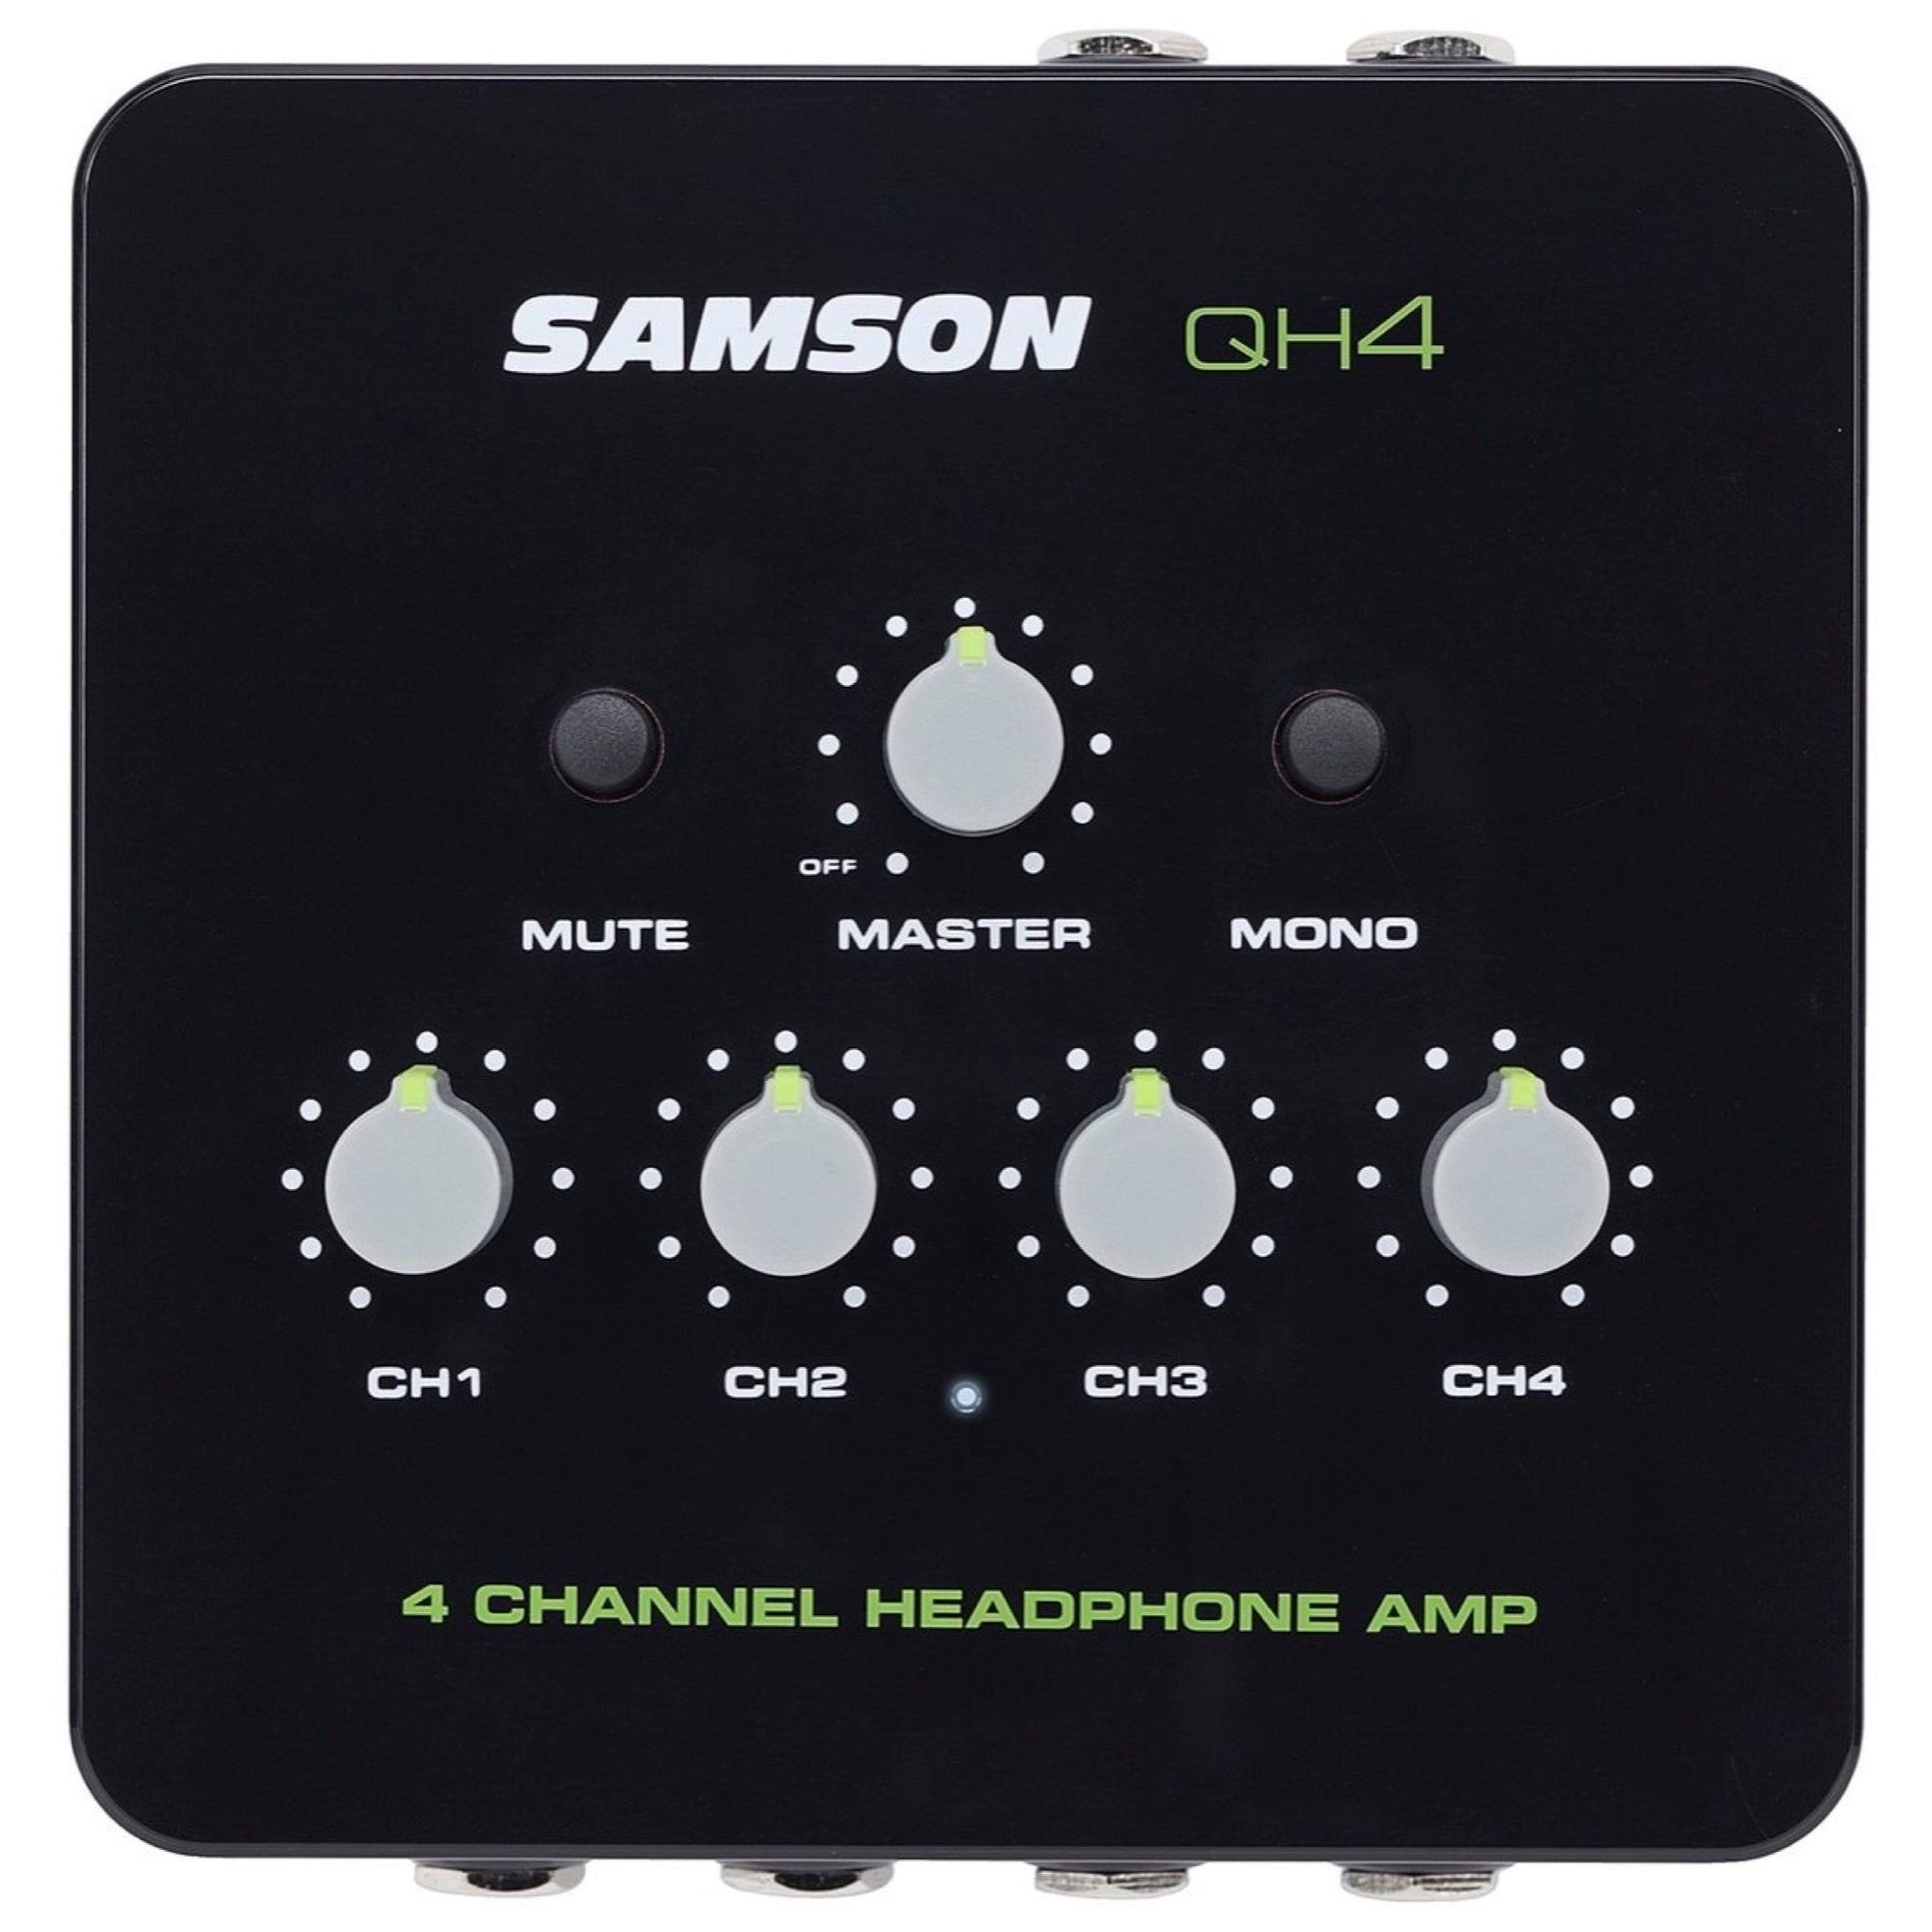 Samson QH4 Studio Headphone Amplifier, 4-Channel